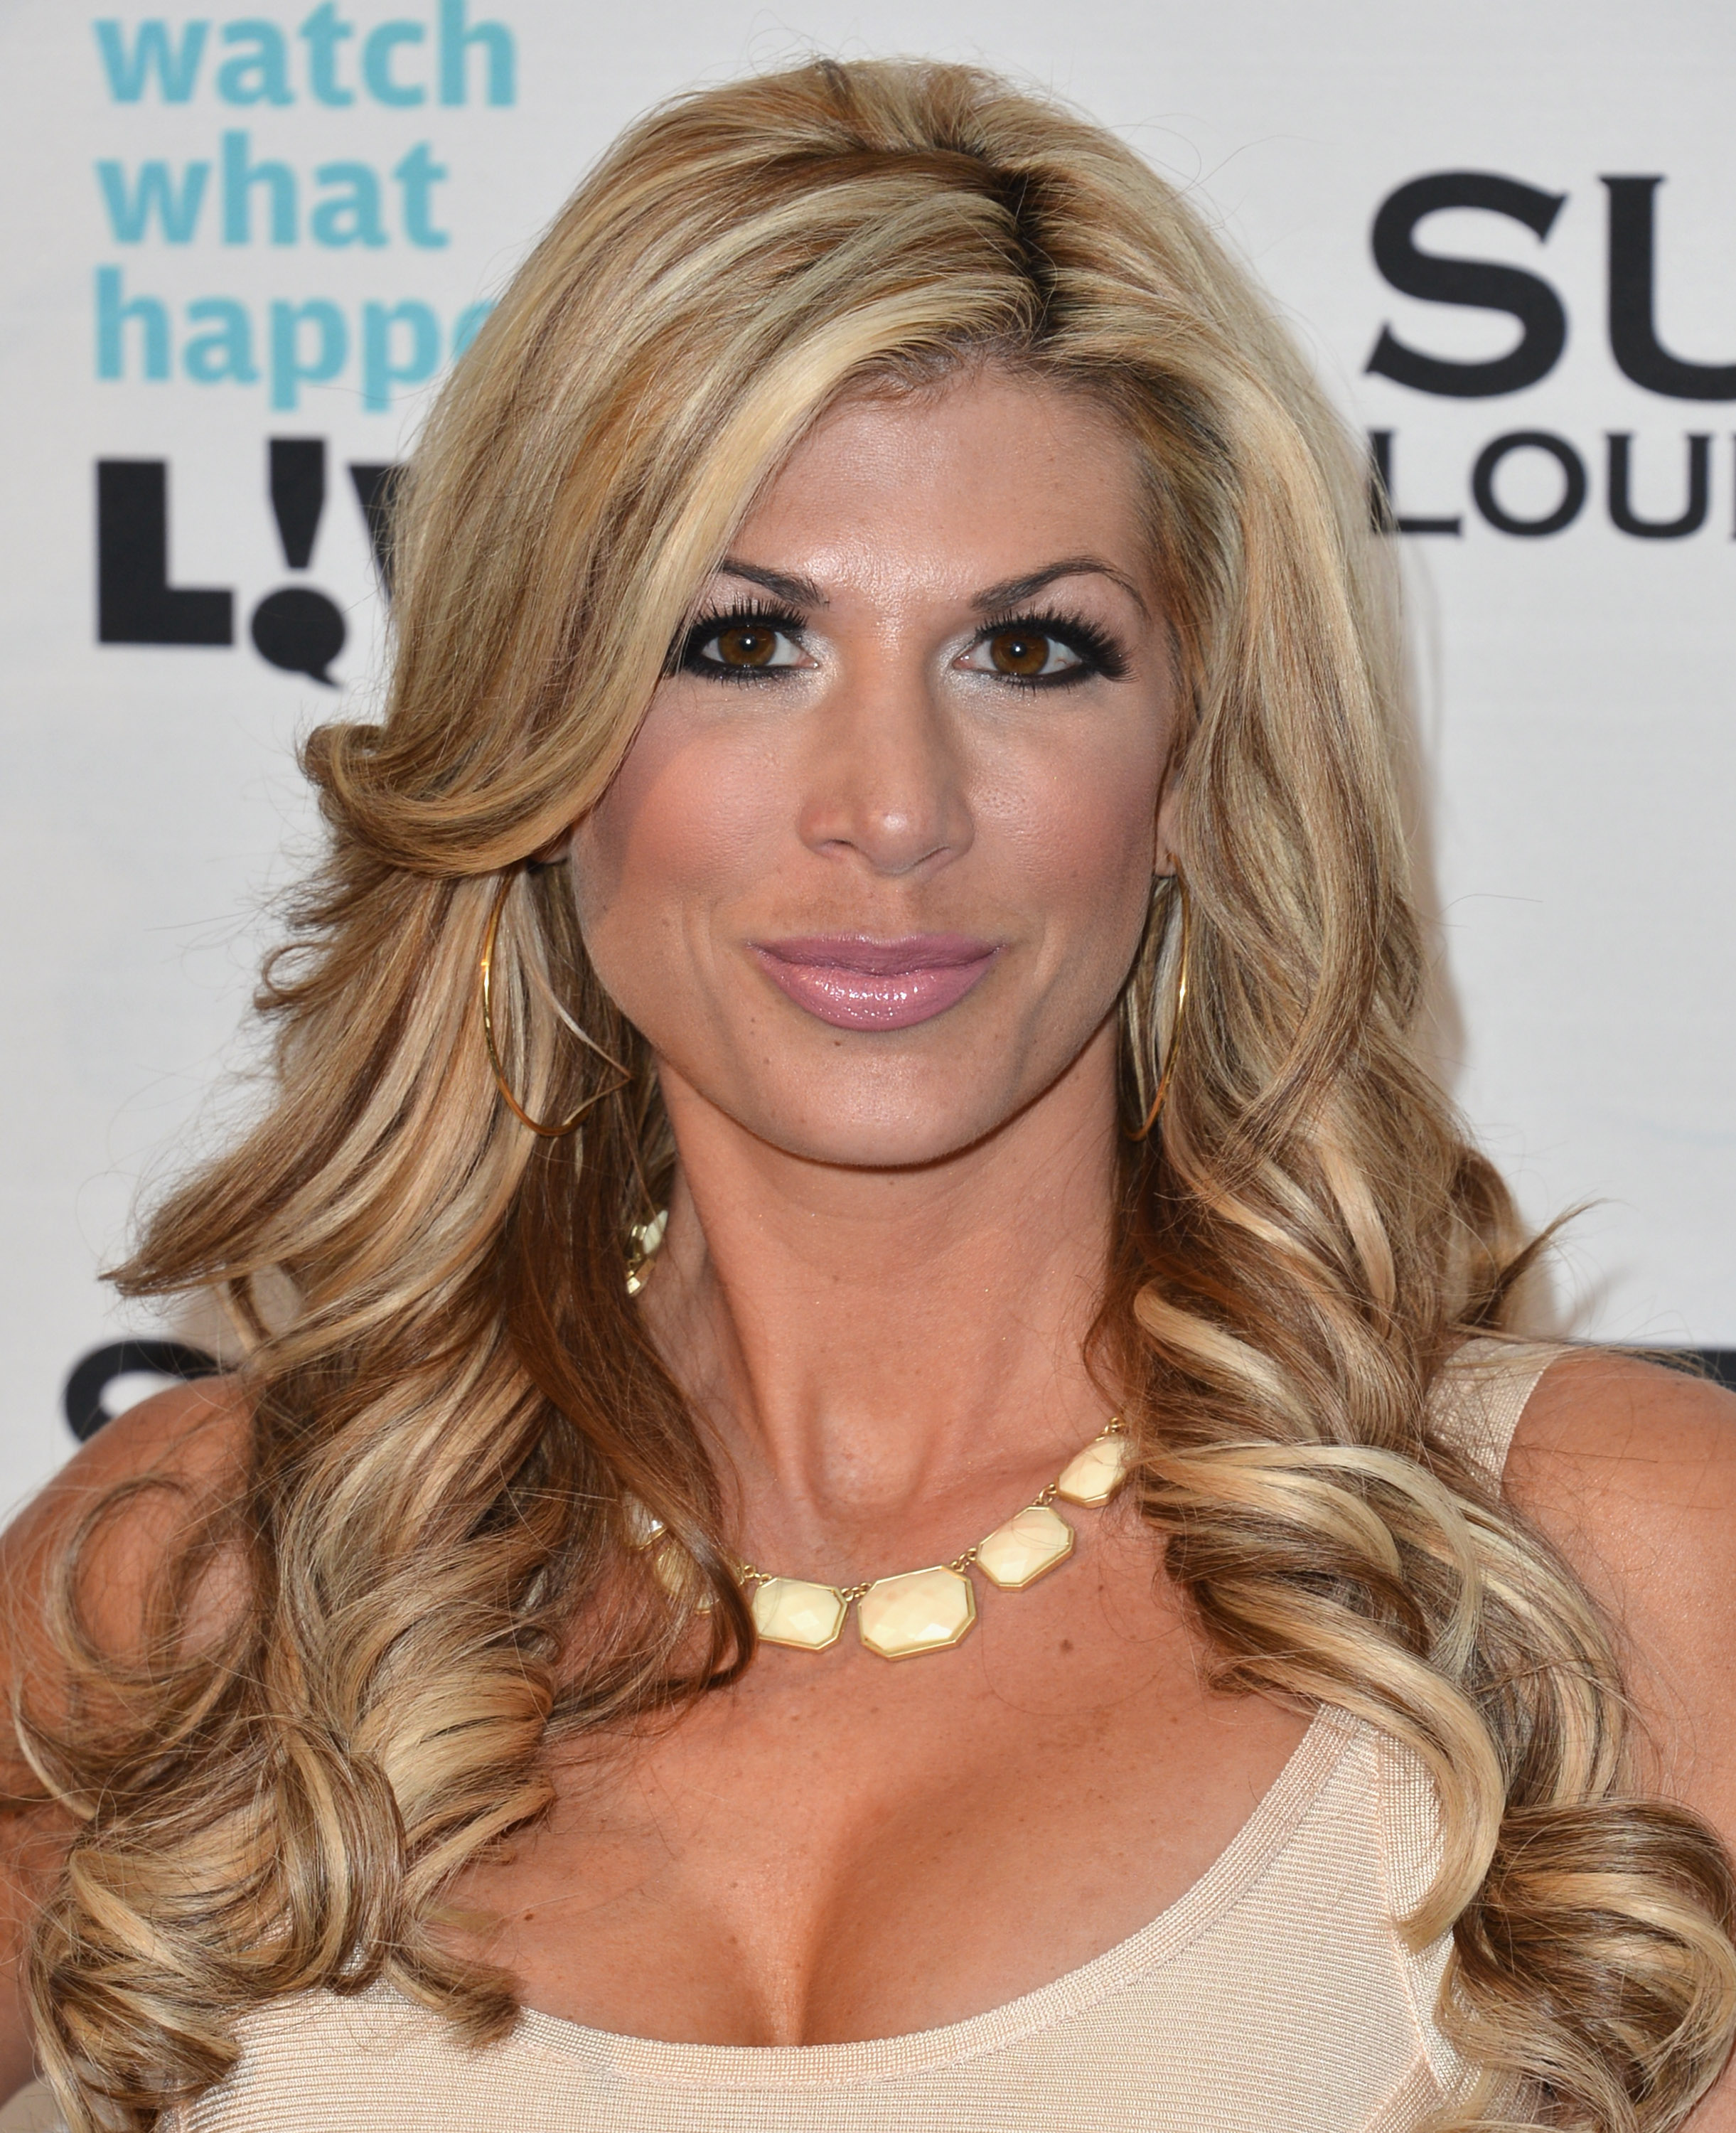 'Real Housewives Of Orange County' News 2014: Alexis Bellino Slams Tamra Barney Judge's Apology [VIDEO]